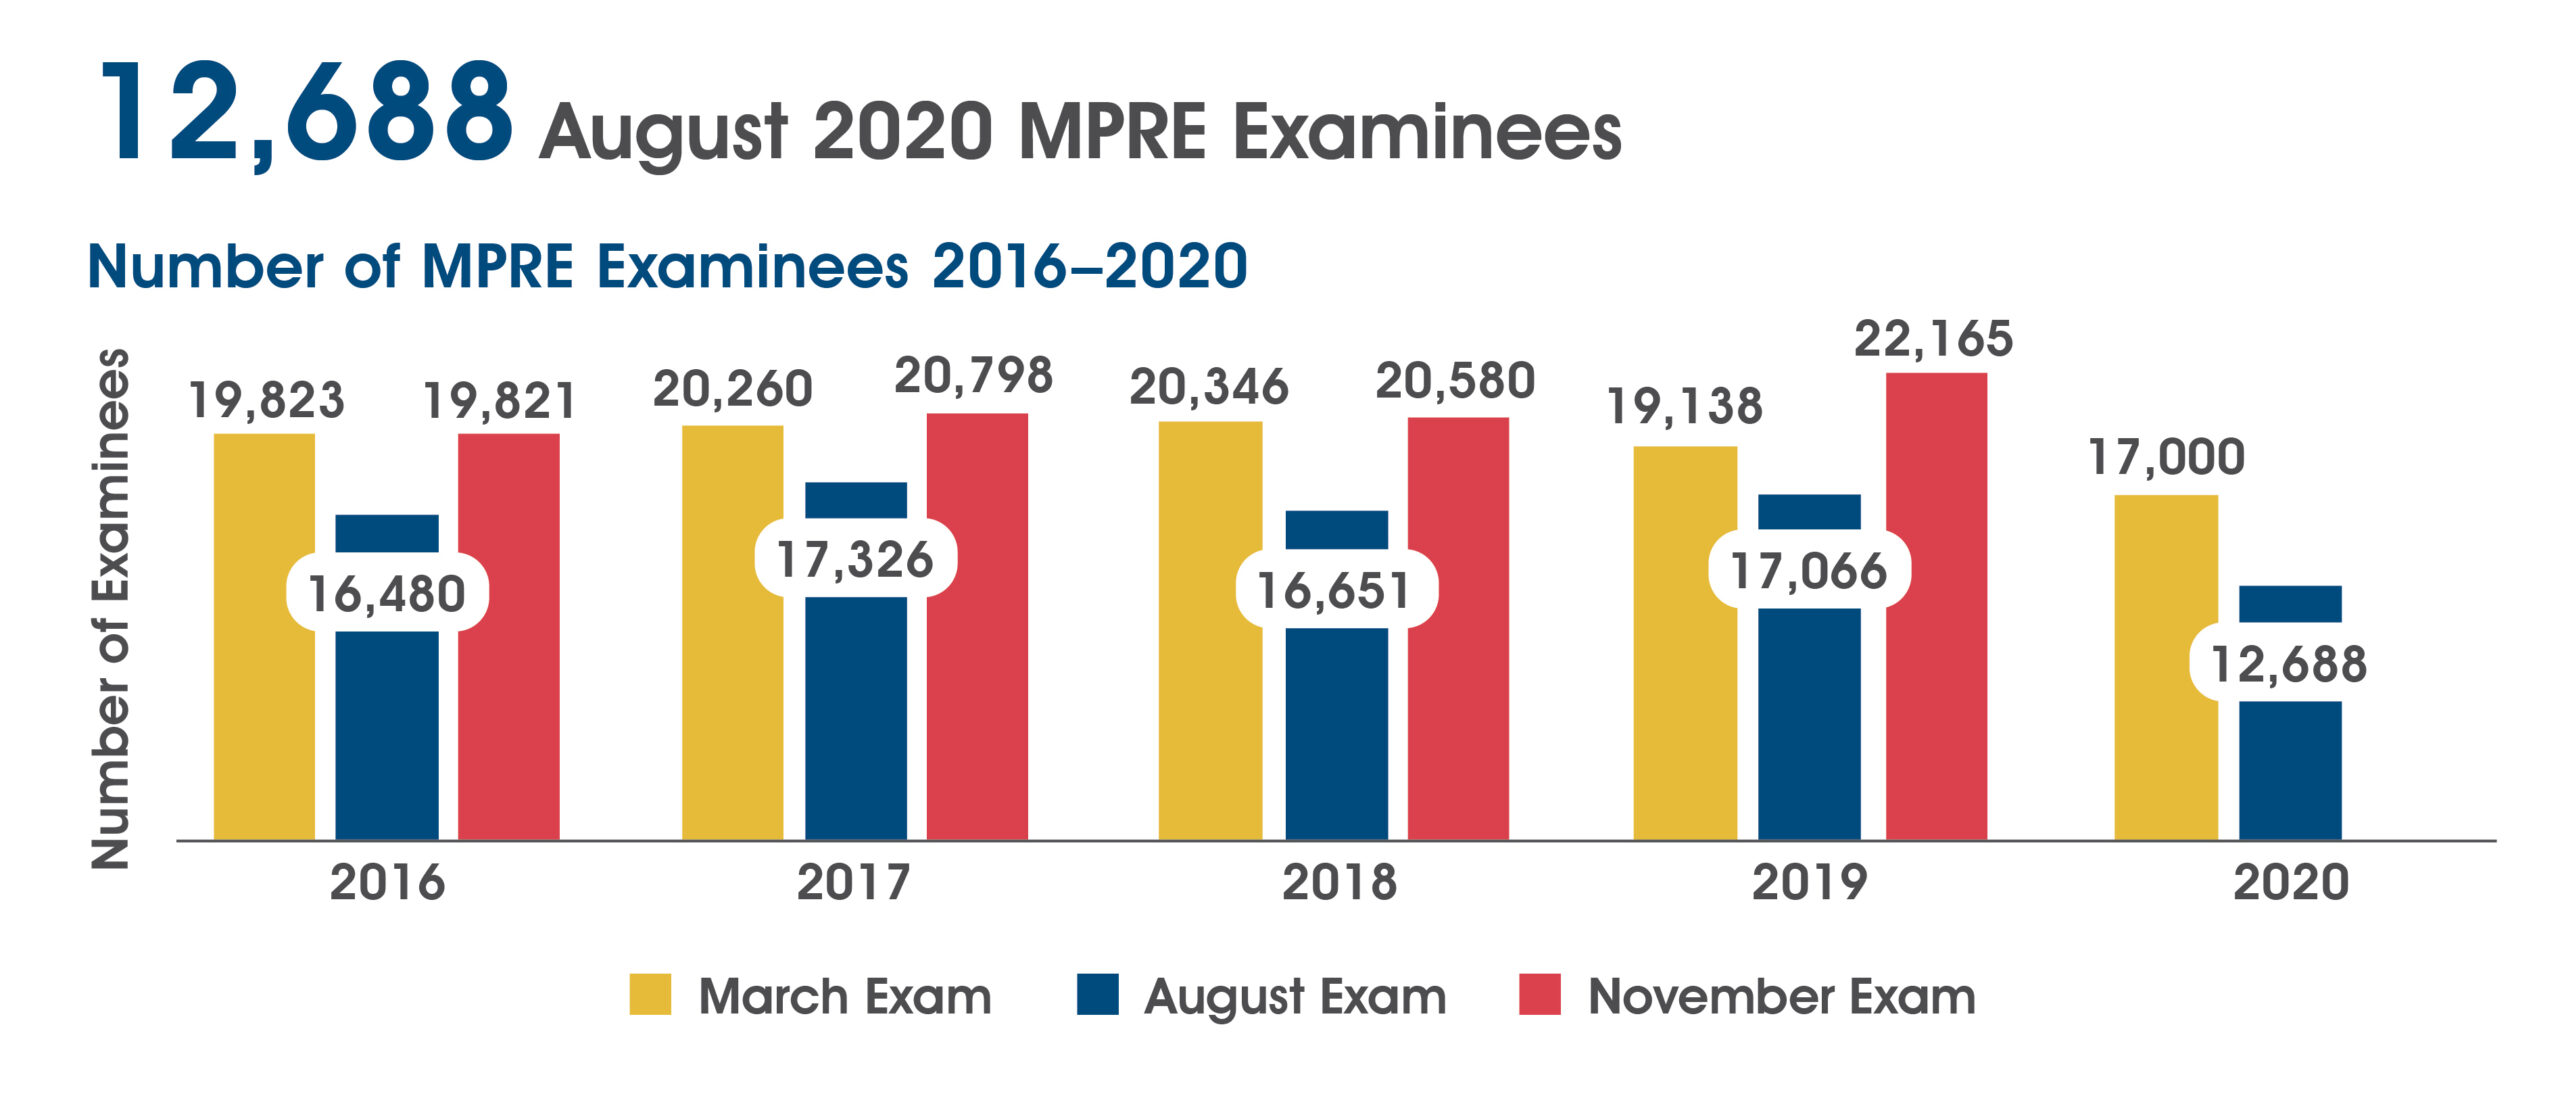 A chart showing the number of MPRE examinees 2016-2020. In March 2016-2020 there were 19,823; 20,260; 20,346; 19,138; and 17,000 examinees. In August 2016-2020 there were 16,480; 17,326; 16,651; 17,066; and 12,688 examinees. In November 2016-2019 there were 19,821; 20,798; 20,580; and 22,165 examinees.